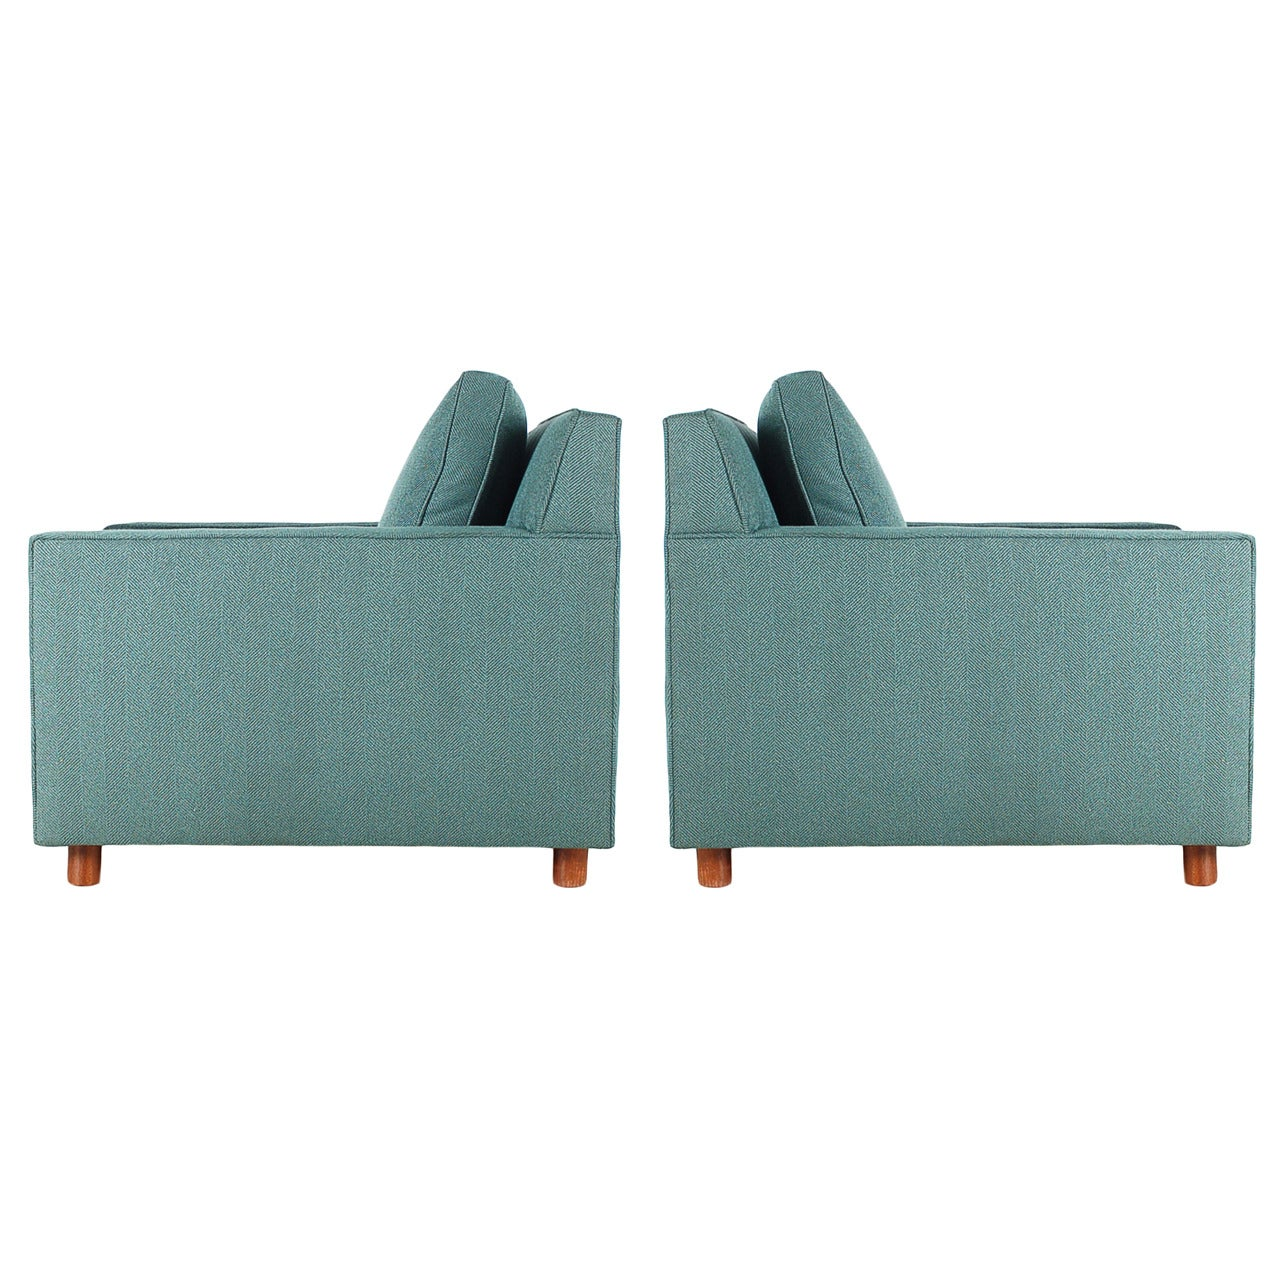 Mid-Century Modern Cube or Case Club Lounge Chairs